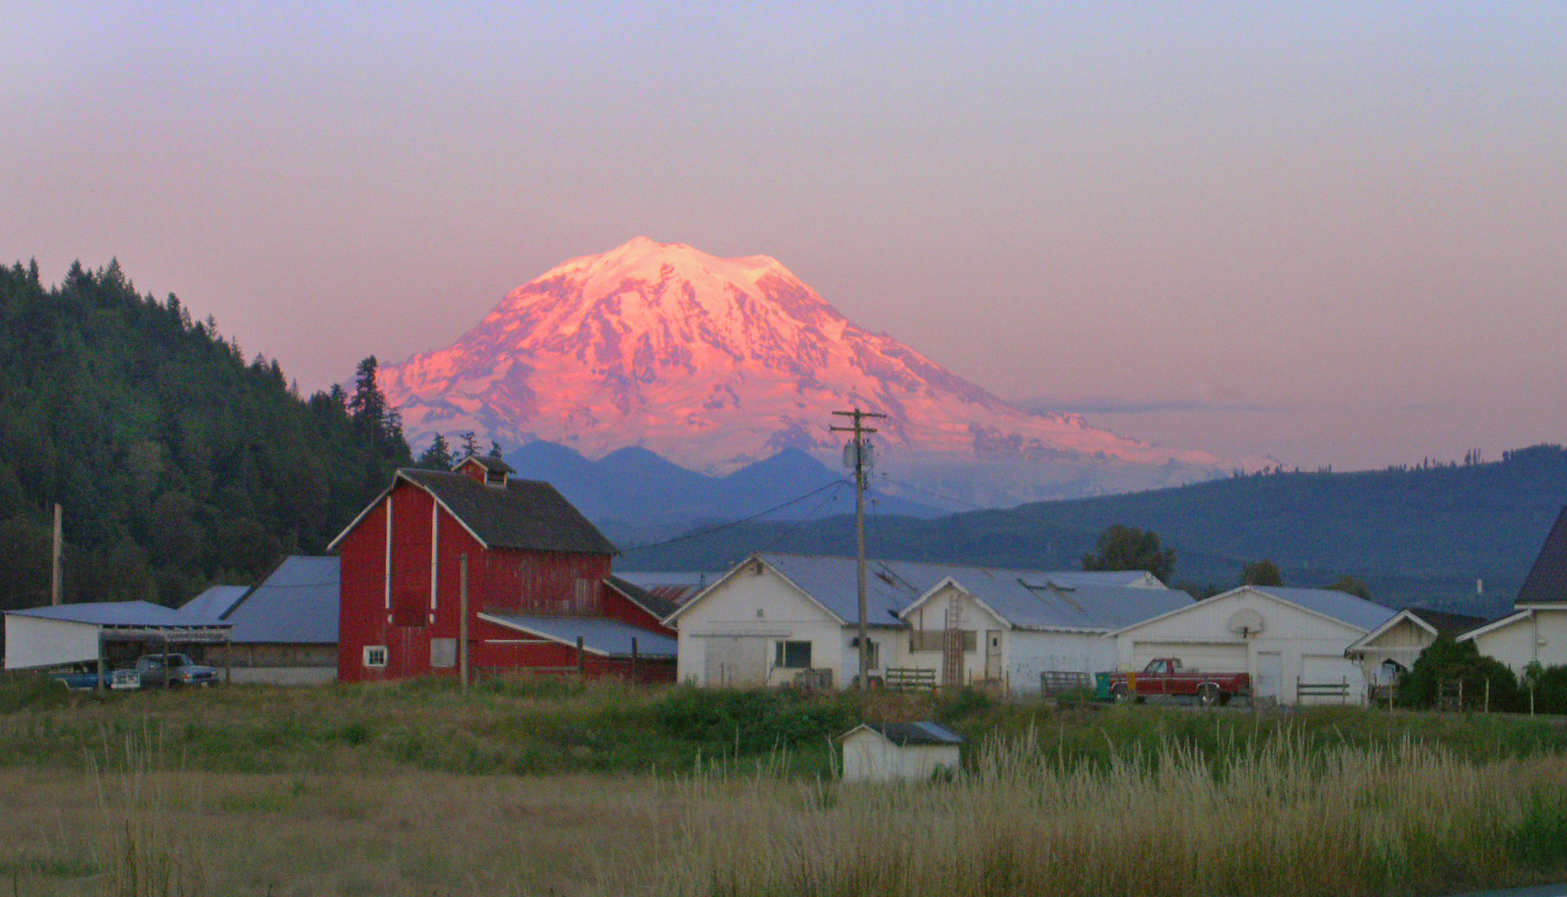 Sun setting on Mt Rainier from an Orting farm.